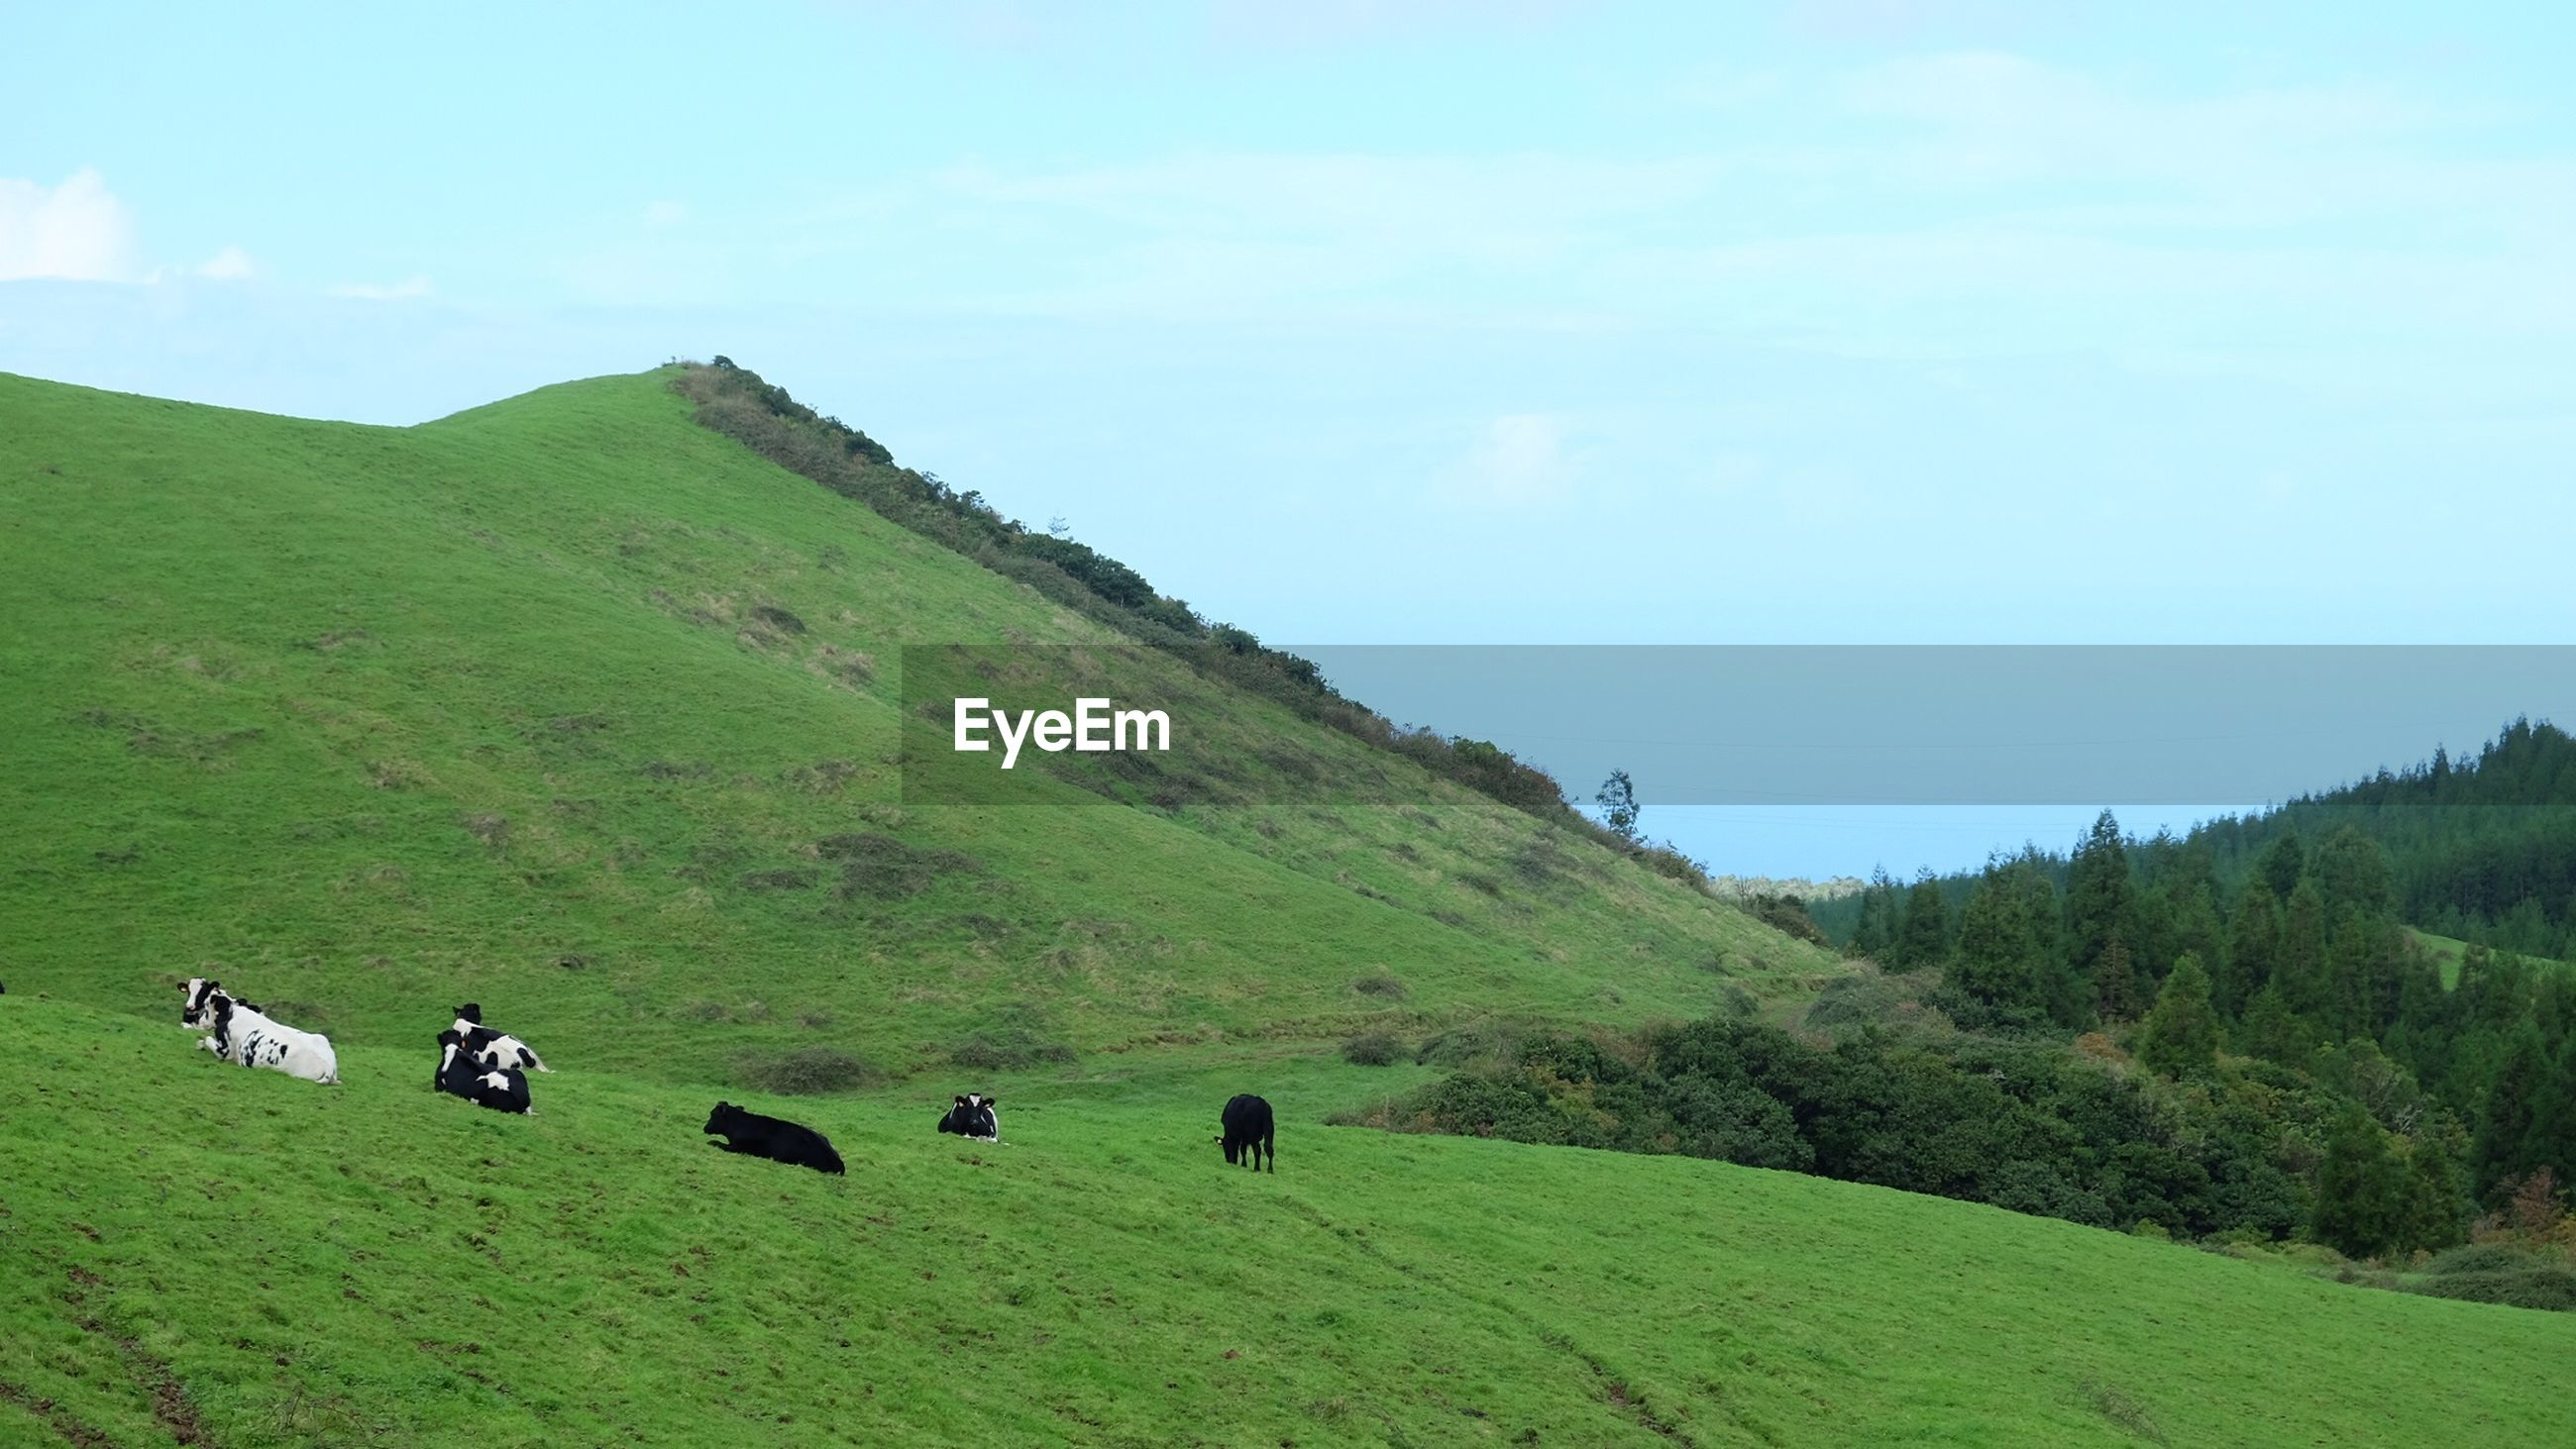 Cattle on hill against mountains